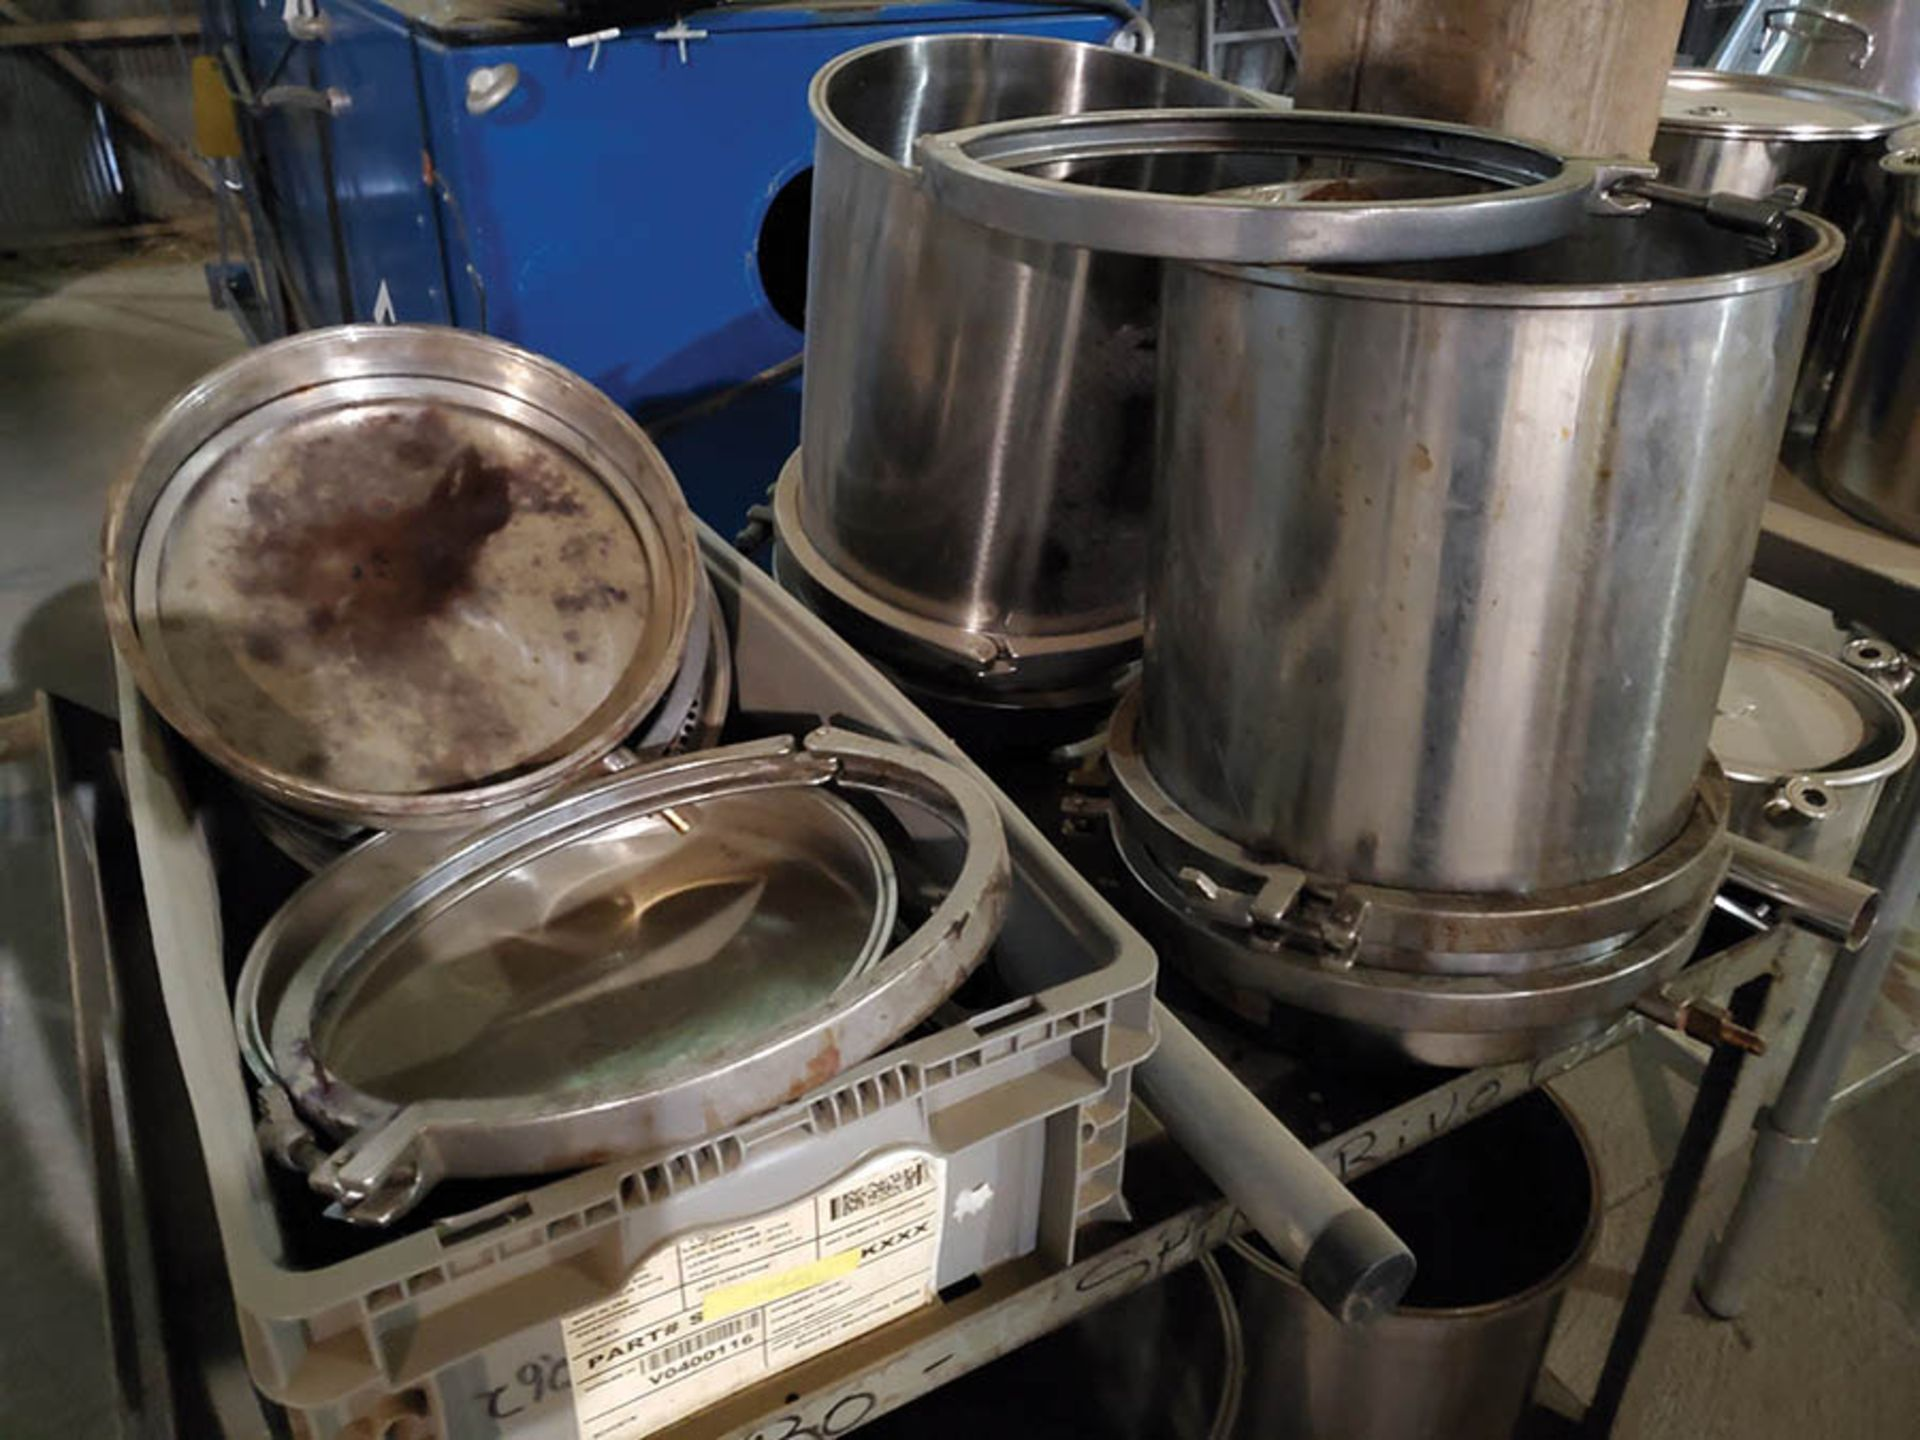 STAINLESS STEEL TABLE AND CART WITH STAINLESS STEEL FRITSCH CONE POTS, PRESSURE POTS, CLAMP RINGS, - Image 8 of 11